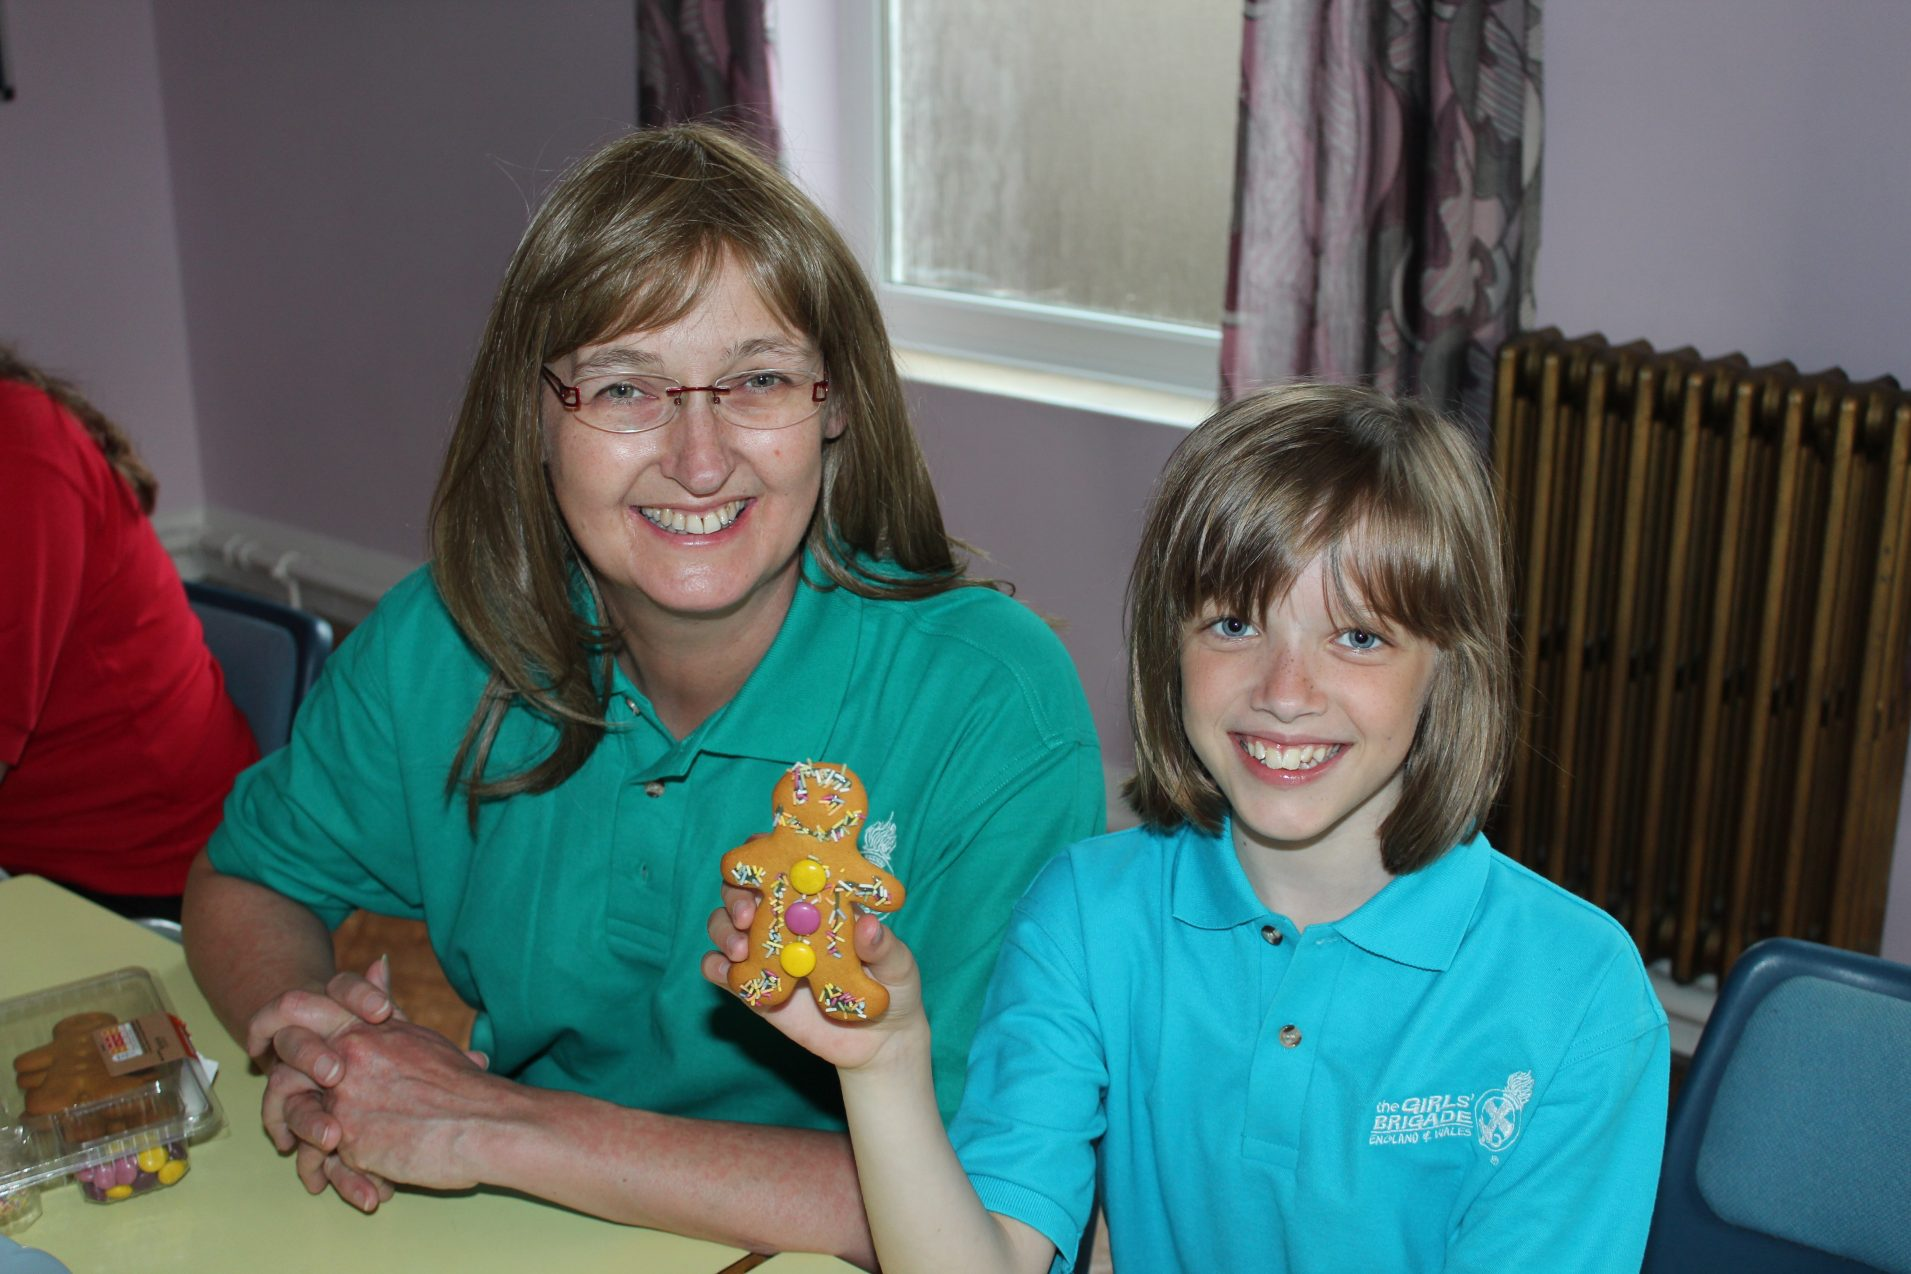 n:gage girls holding up decorated gingerbread man with Girls' Brigade volunteer